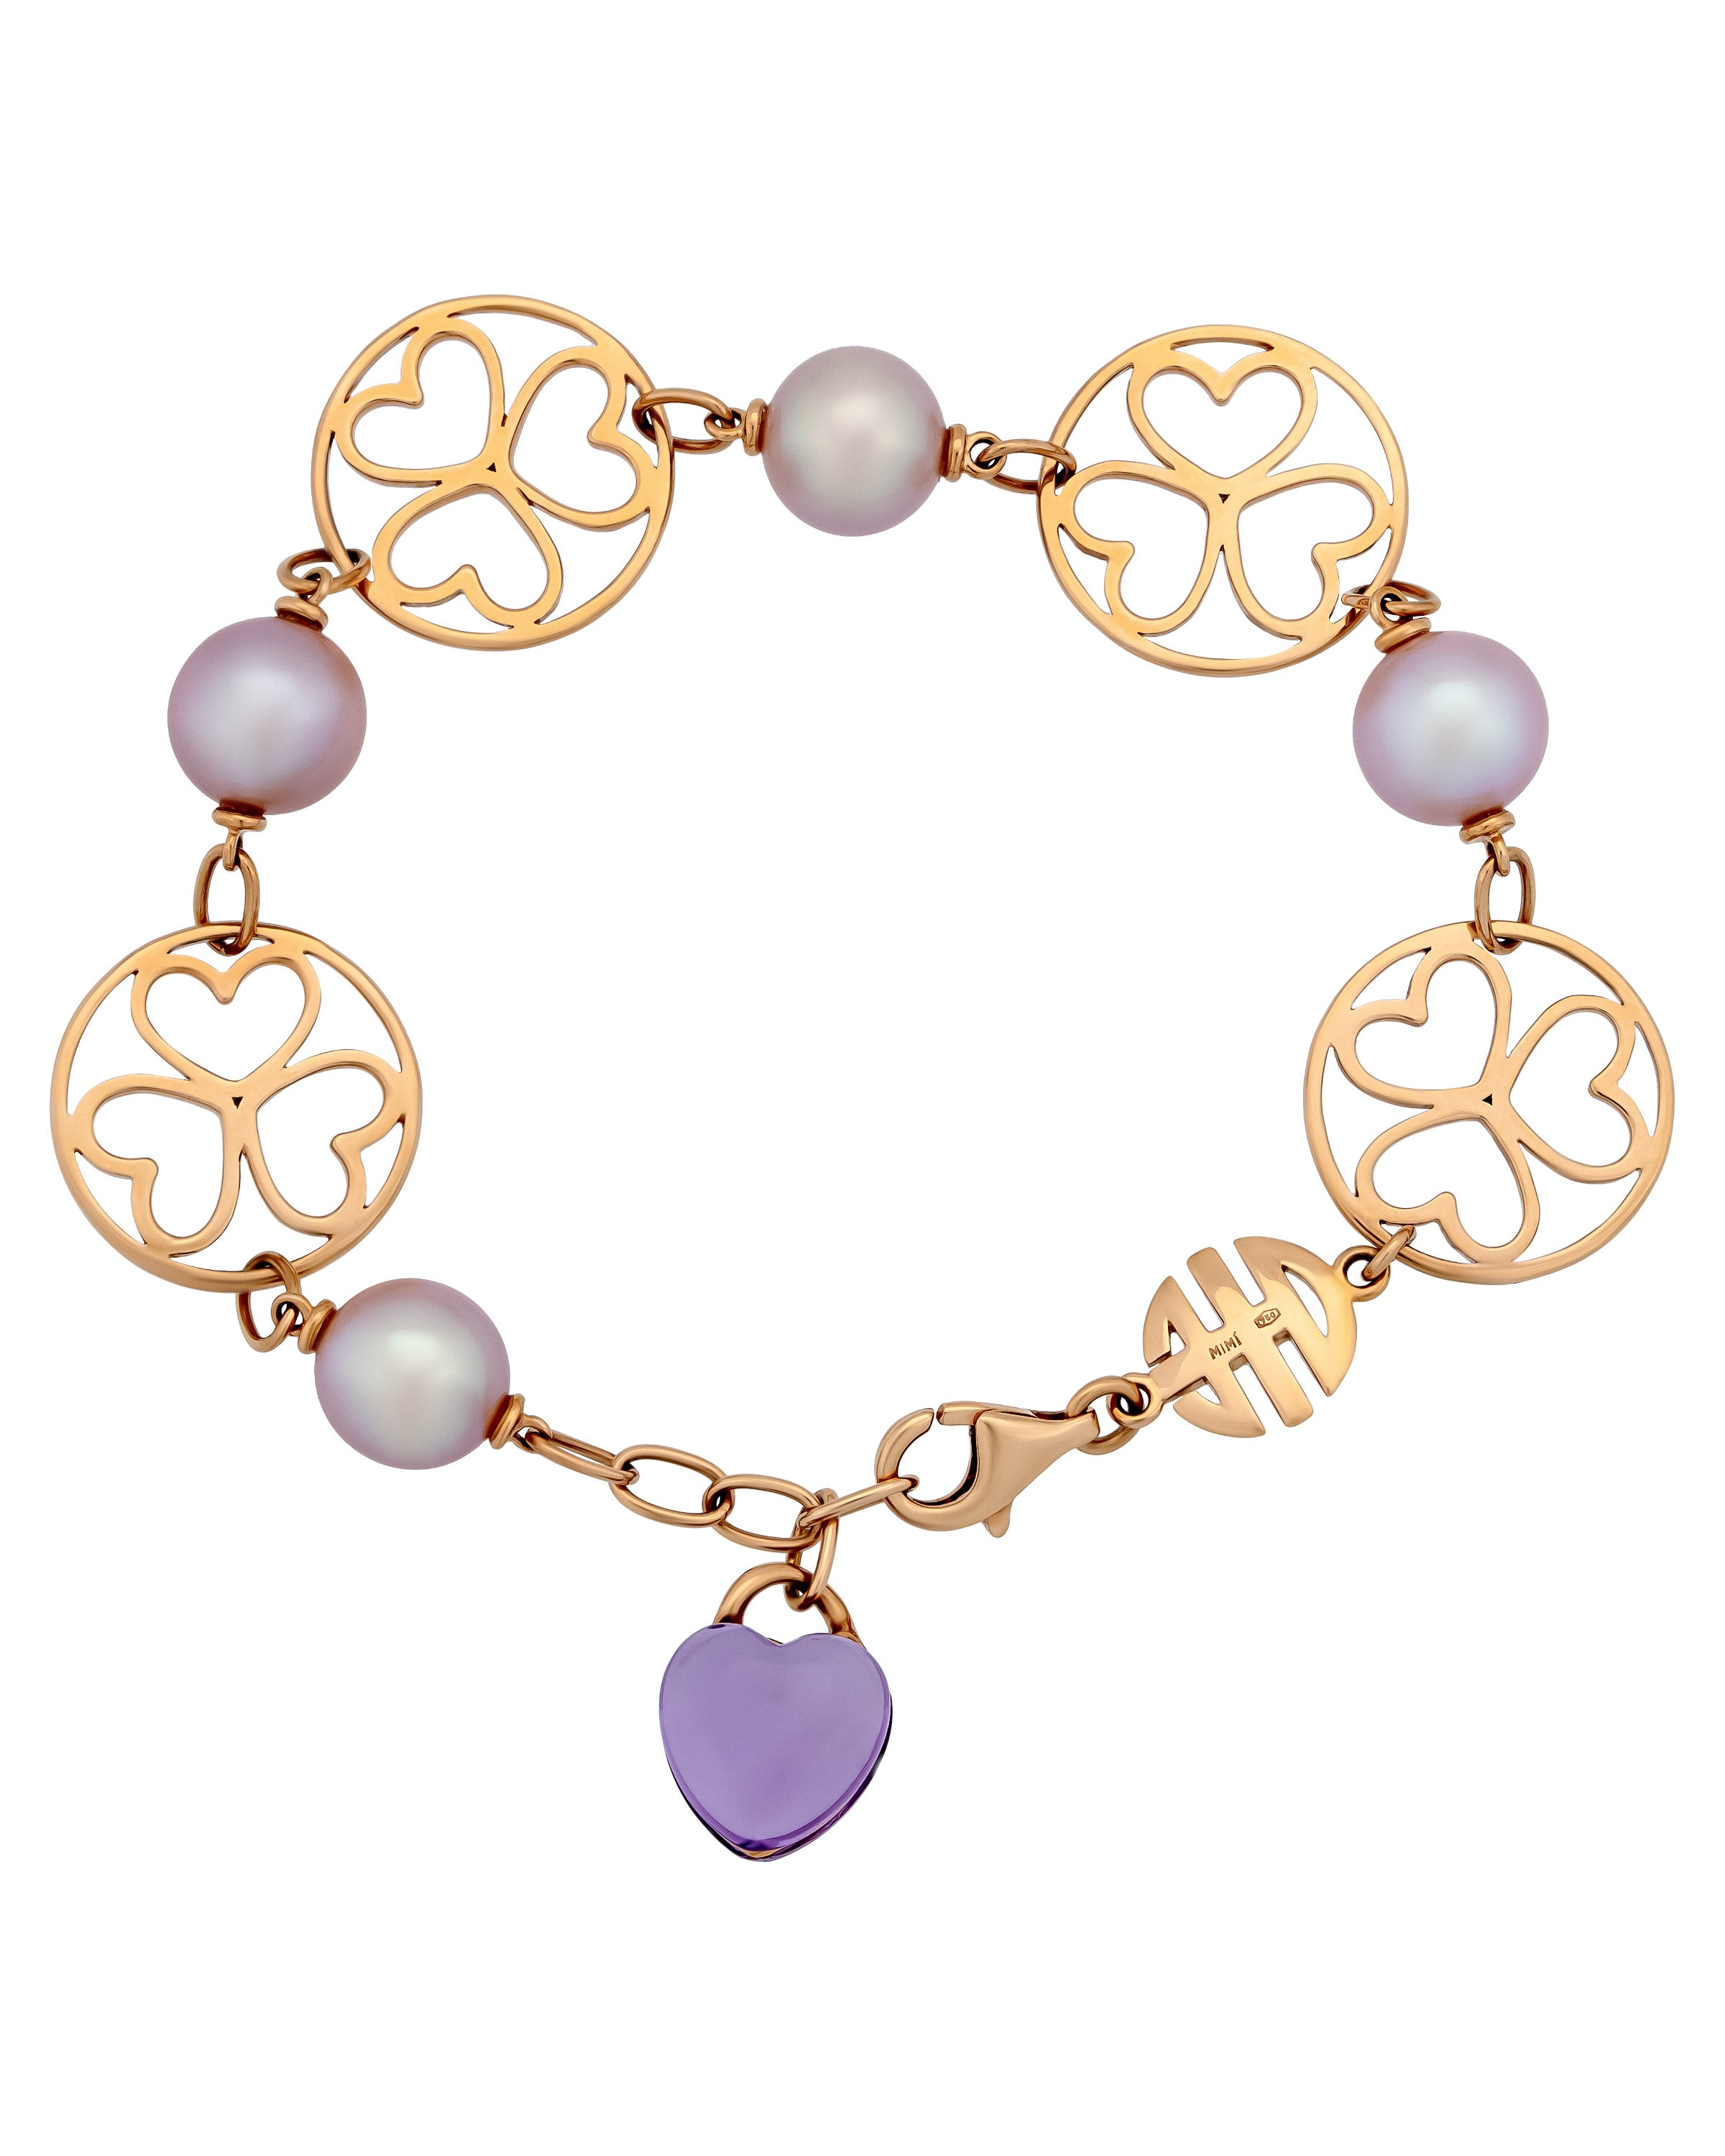 Mimi Milano 18k Rose Gold Violet Amethyst and Freshwater Pearls Bracelet B286R3A